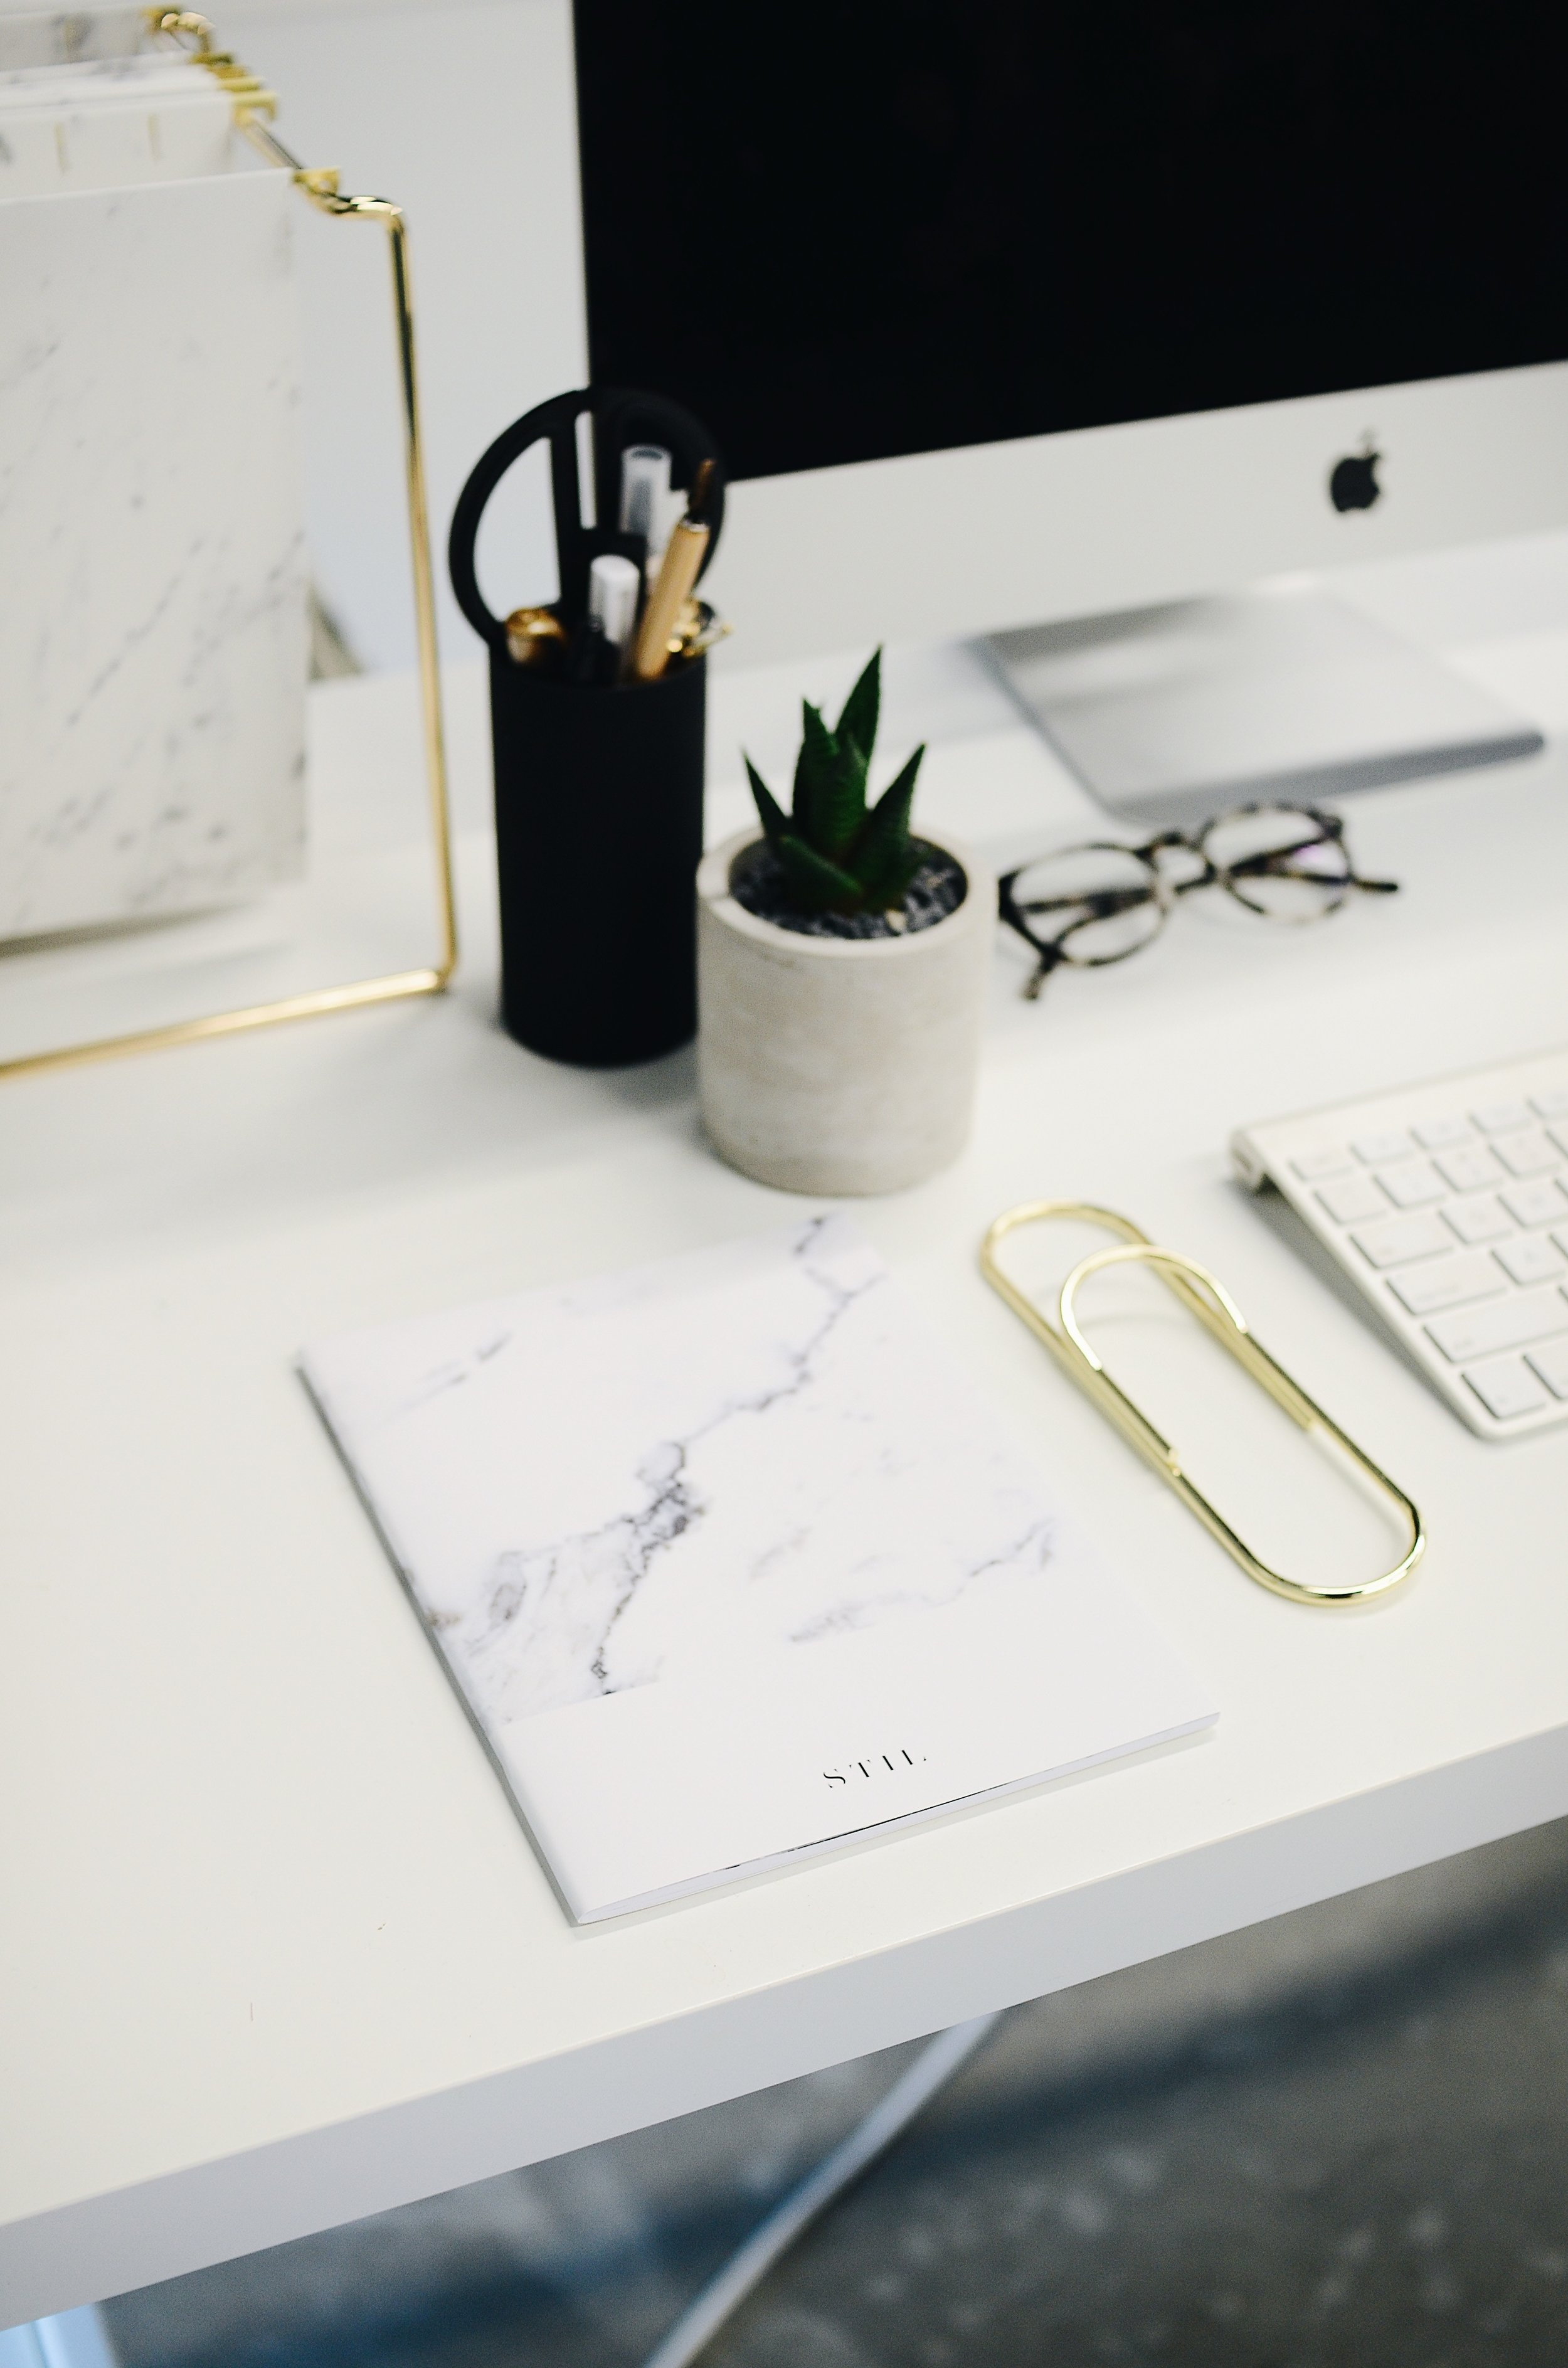 White notepad on a minimal desk with gold paperclip